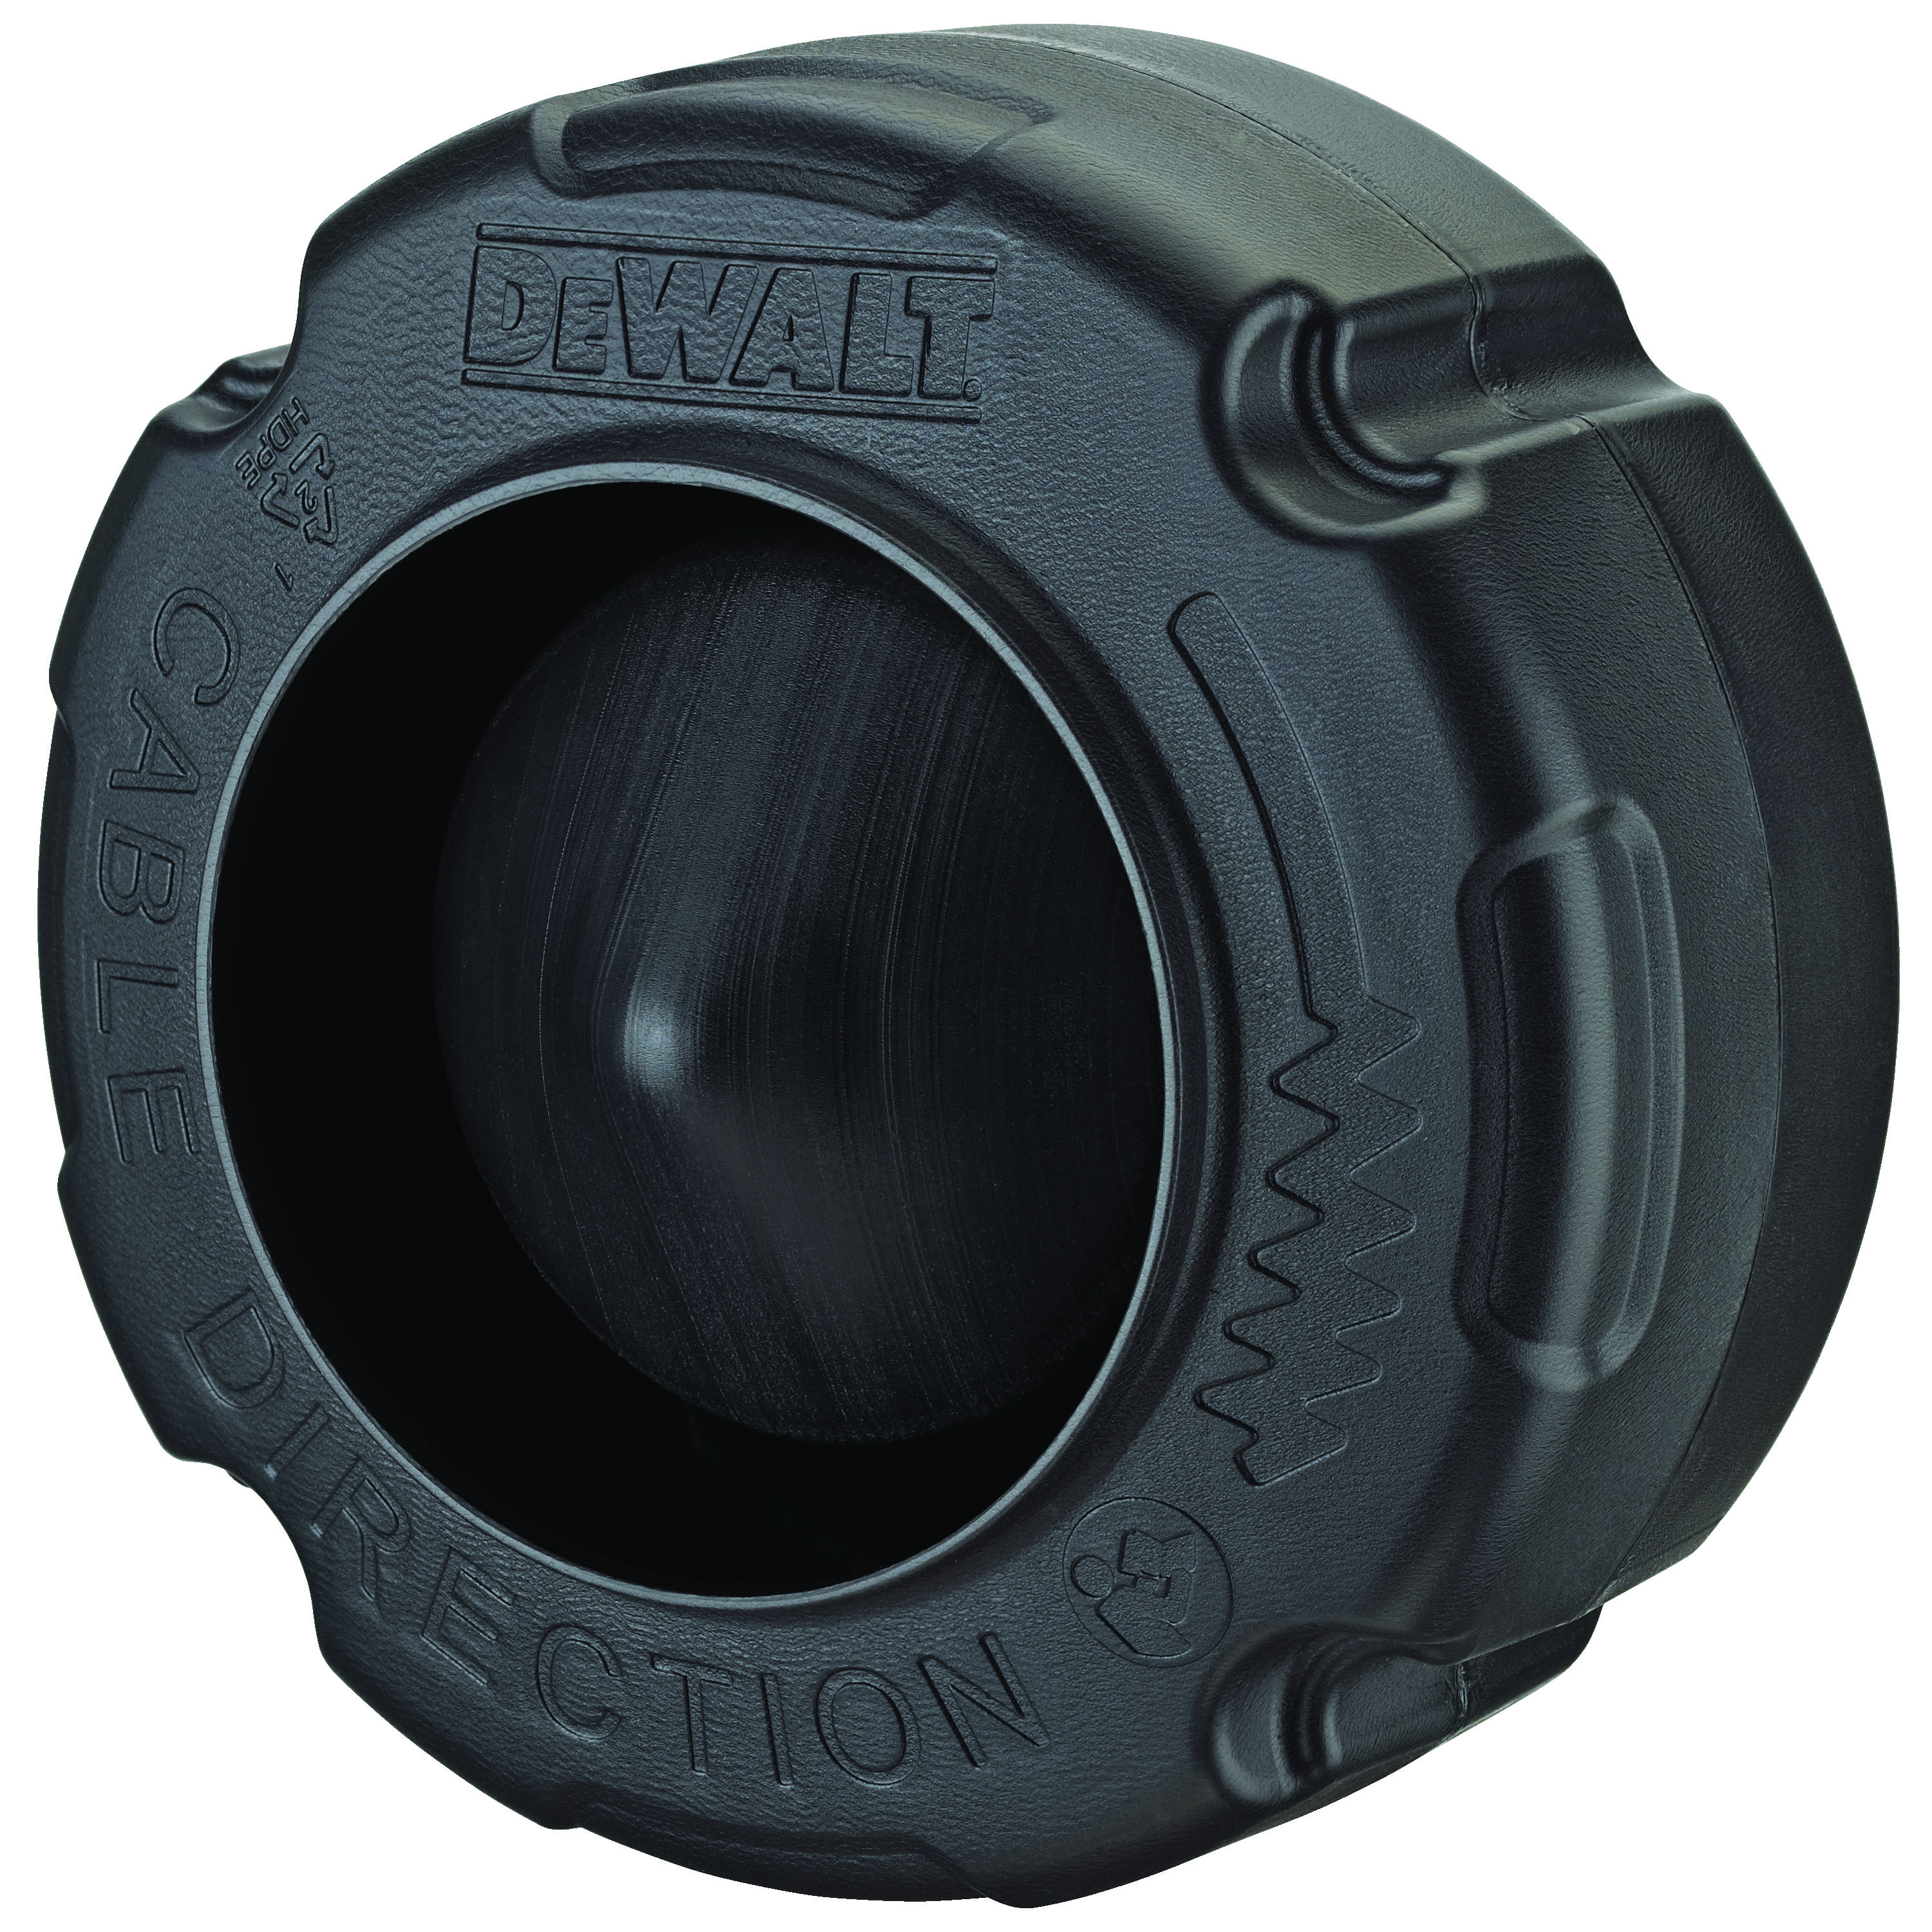 DeWALT® DCD2000 Replacement Drum, For Use With DCD200 Drain Snake, 1/2 in and 3/8 in Hoses, 3/8 in x 35 ft and 5/16 in x 50 ft Cable, Polyethylene Plastic